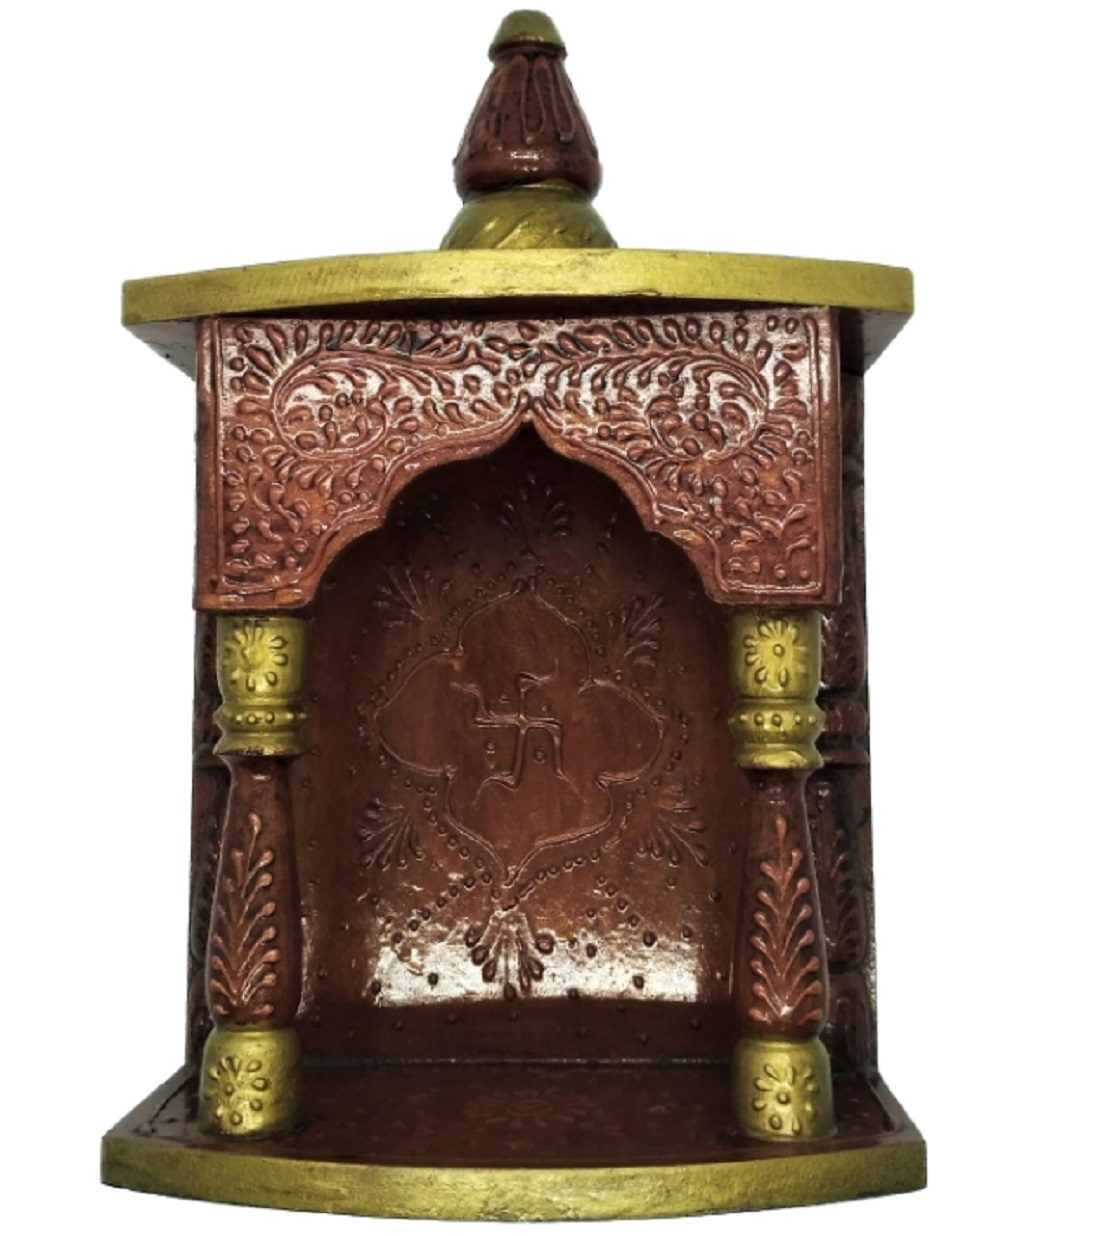 METALCRAFTS Temple, wooden, mango wood, table top as well as wall hanging, 13 inch, 32 cm